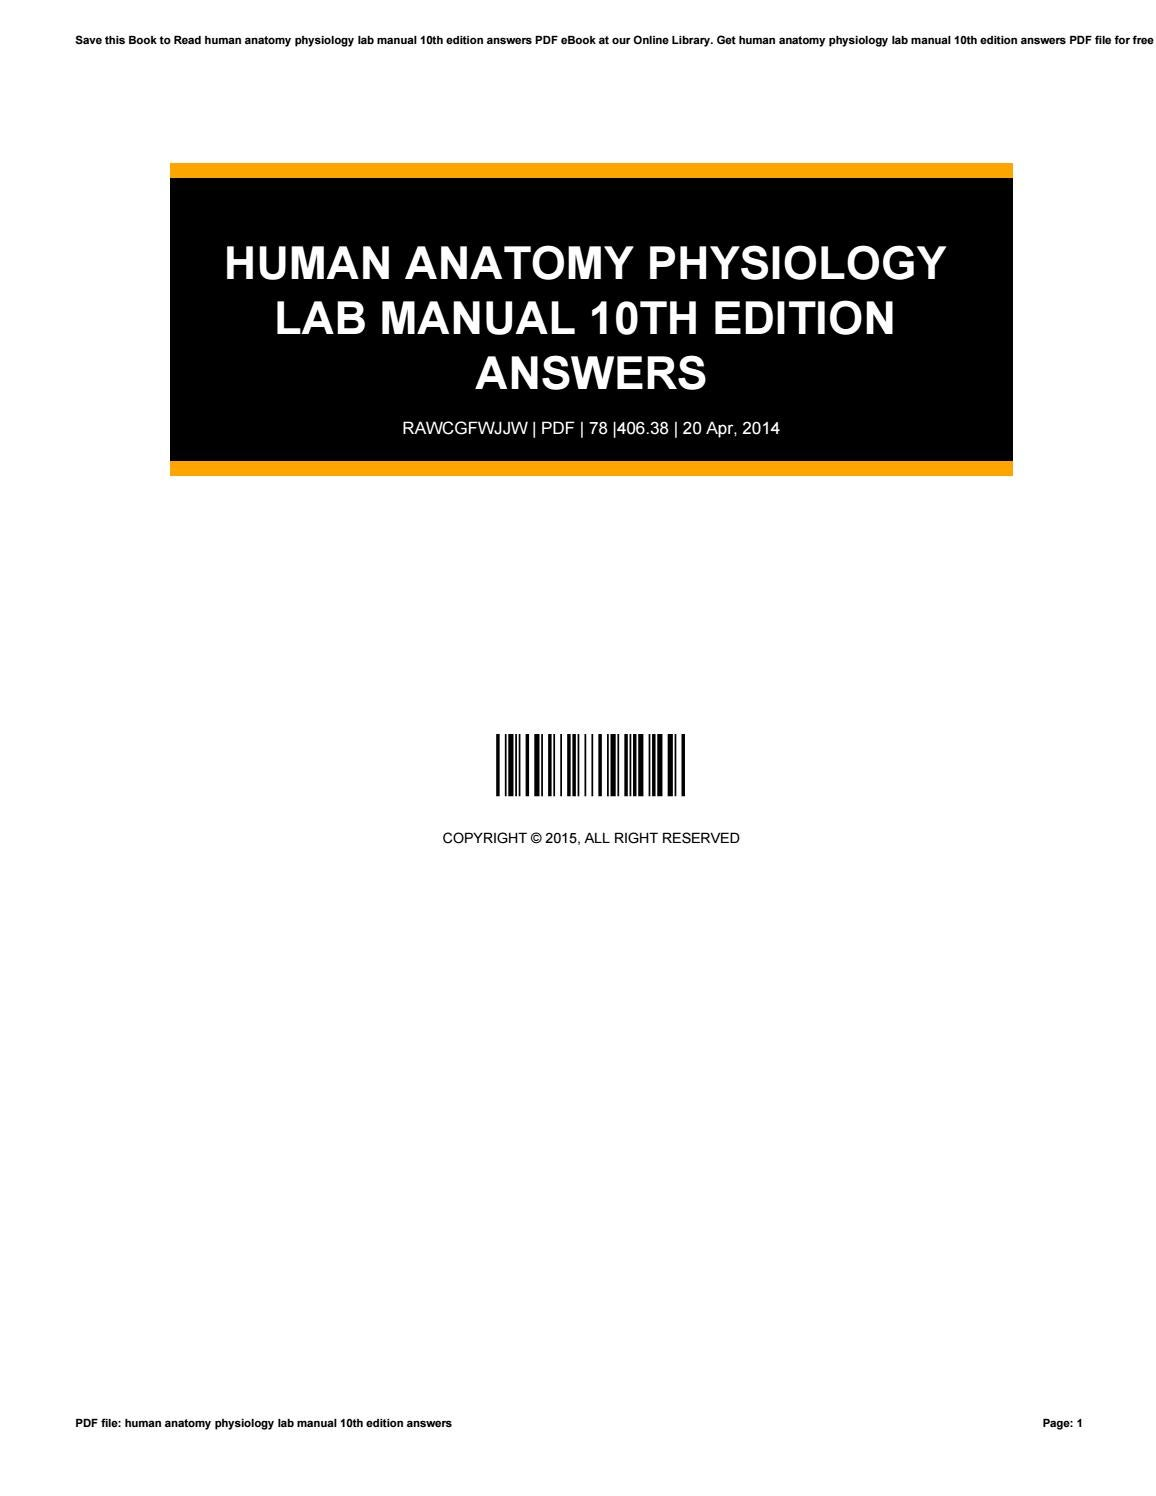 Human anatomy physiology lab manual 10th edition answers by ...